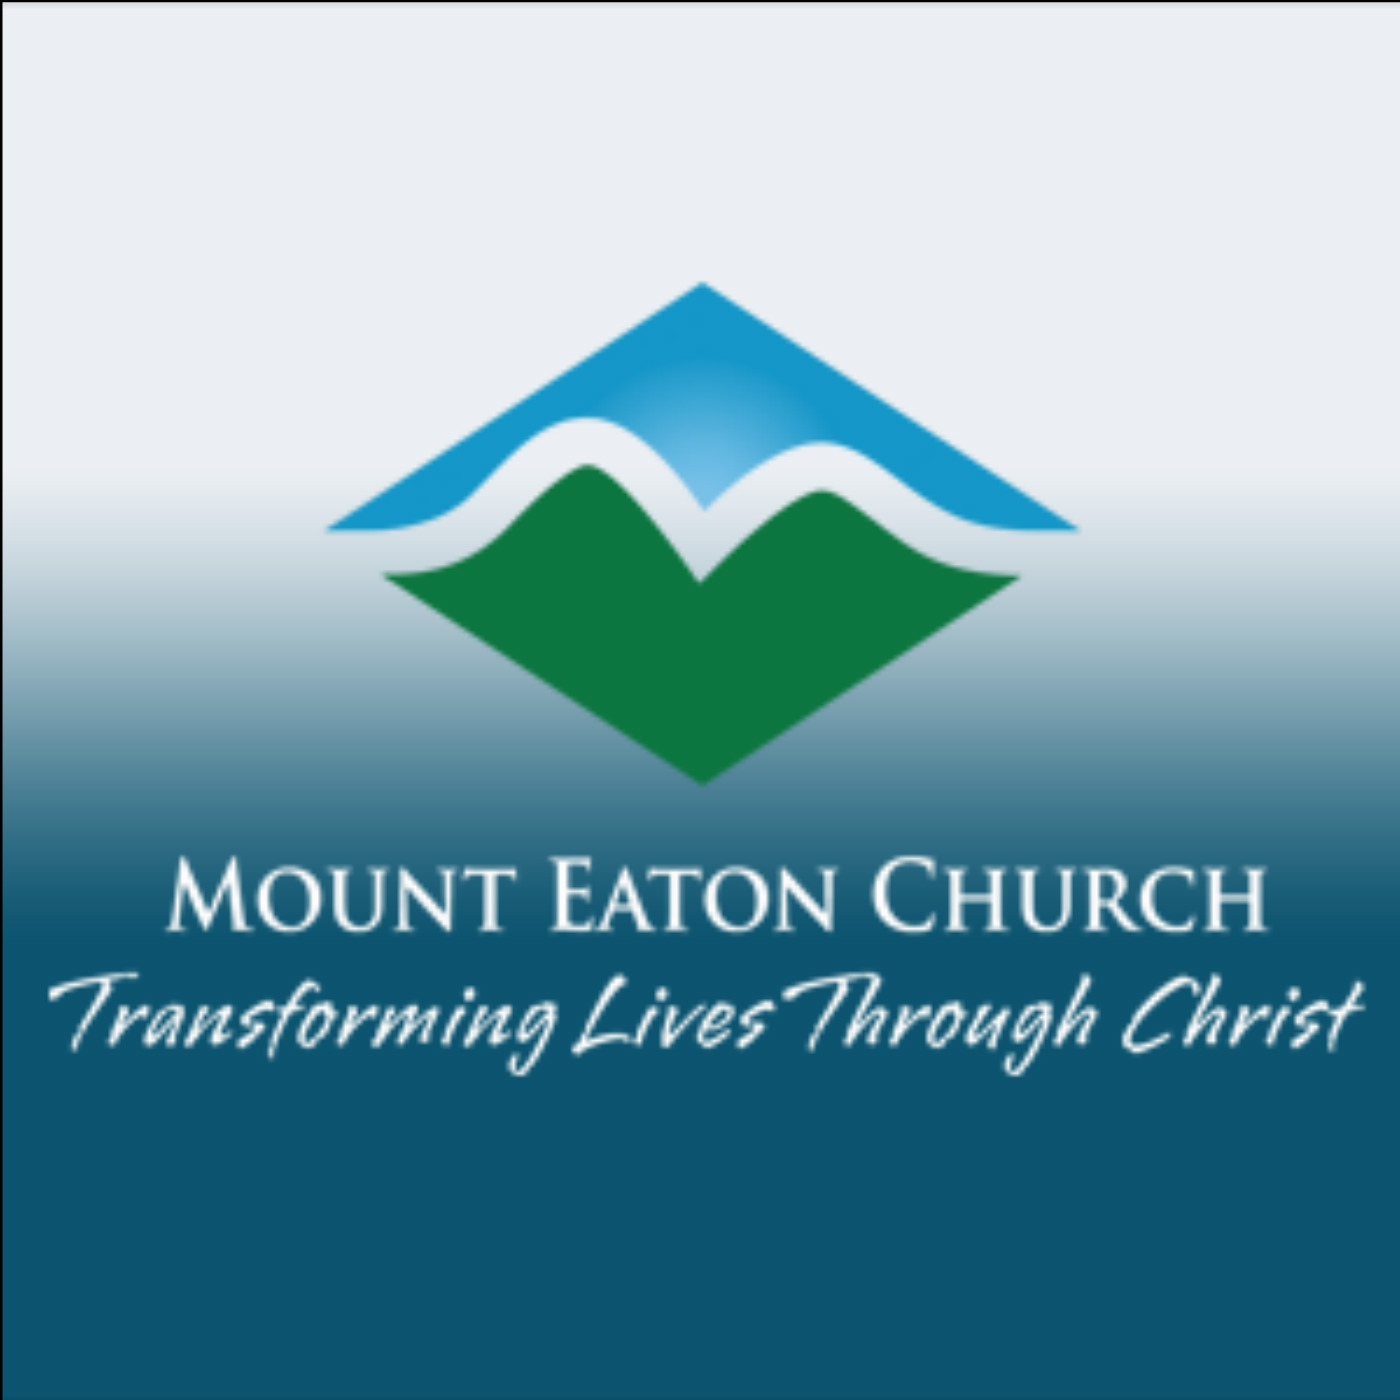 Mount Eaton Church